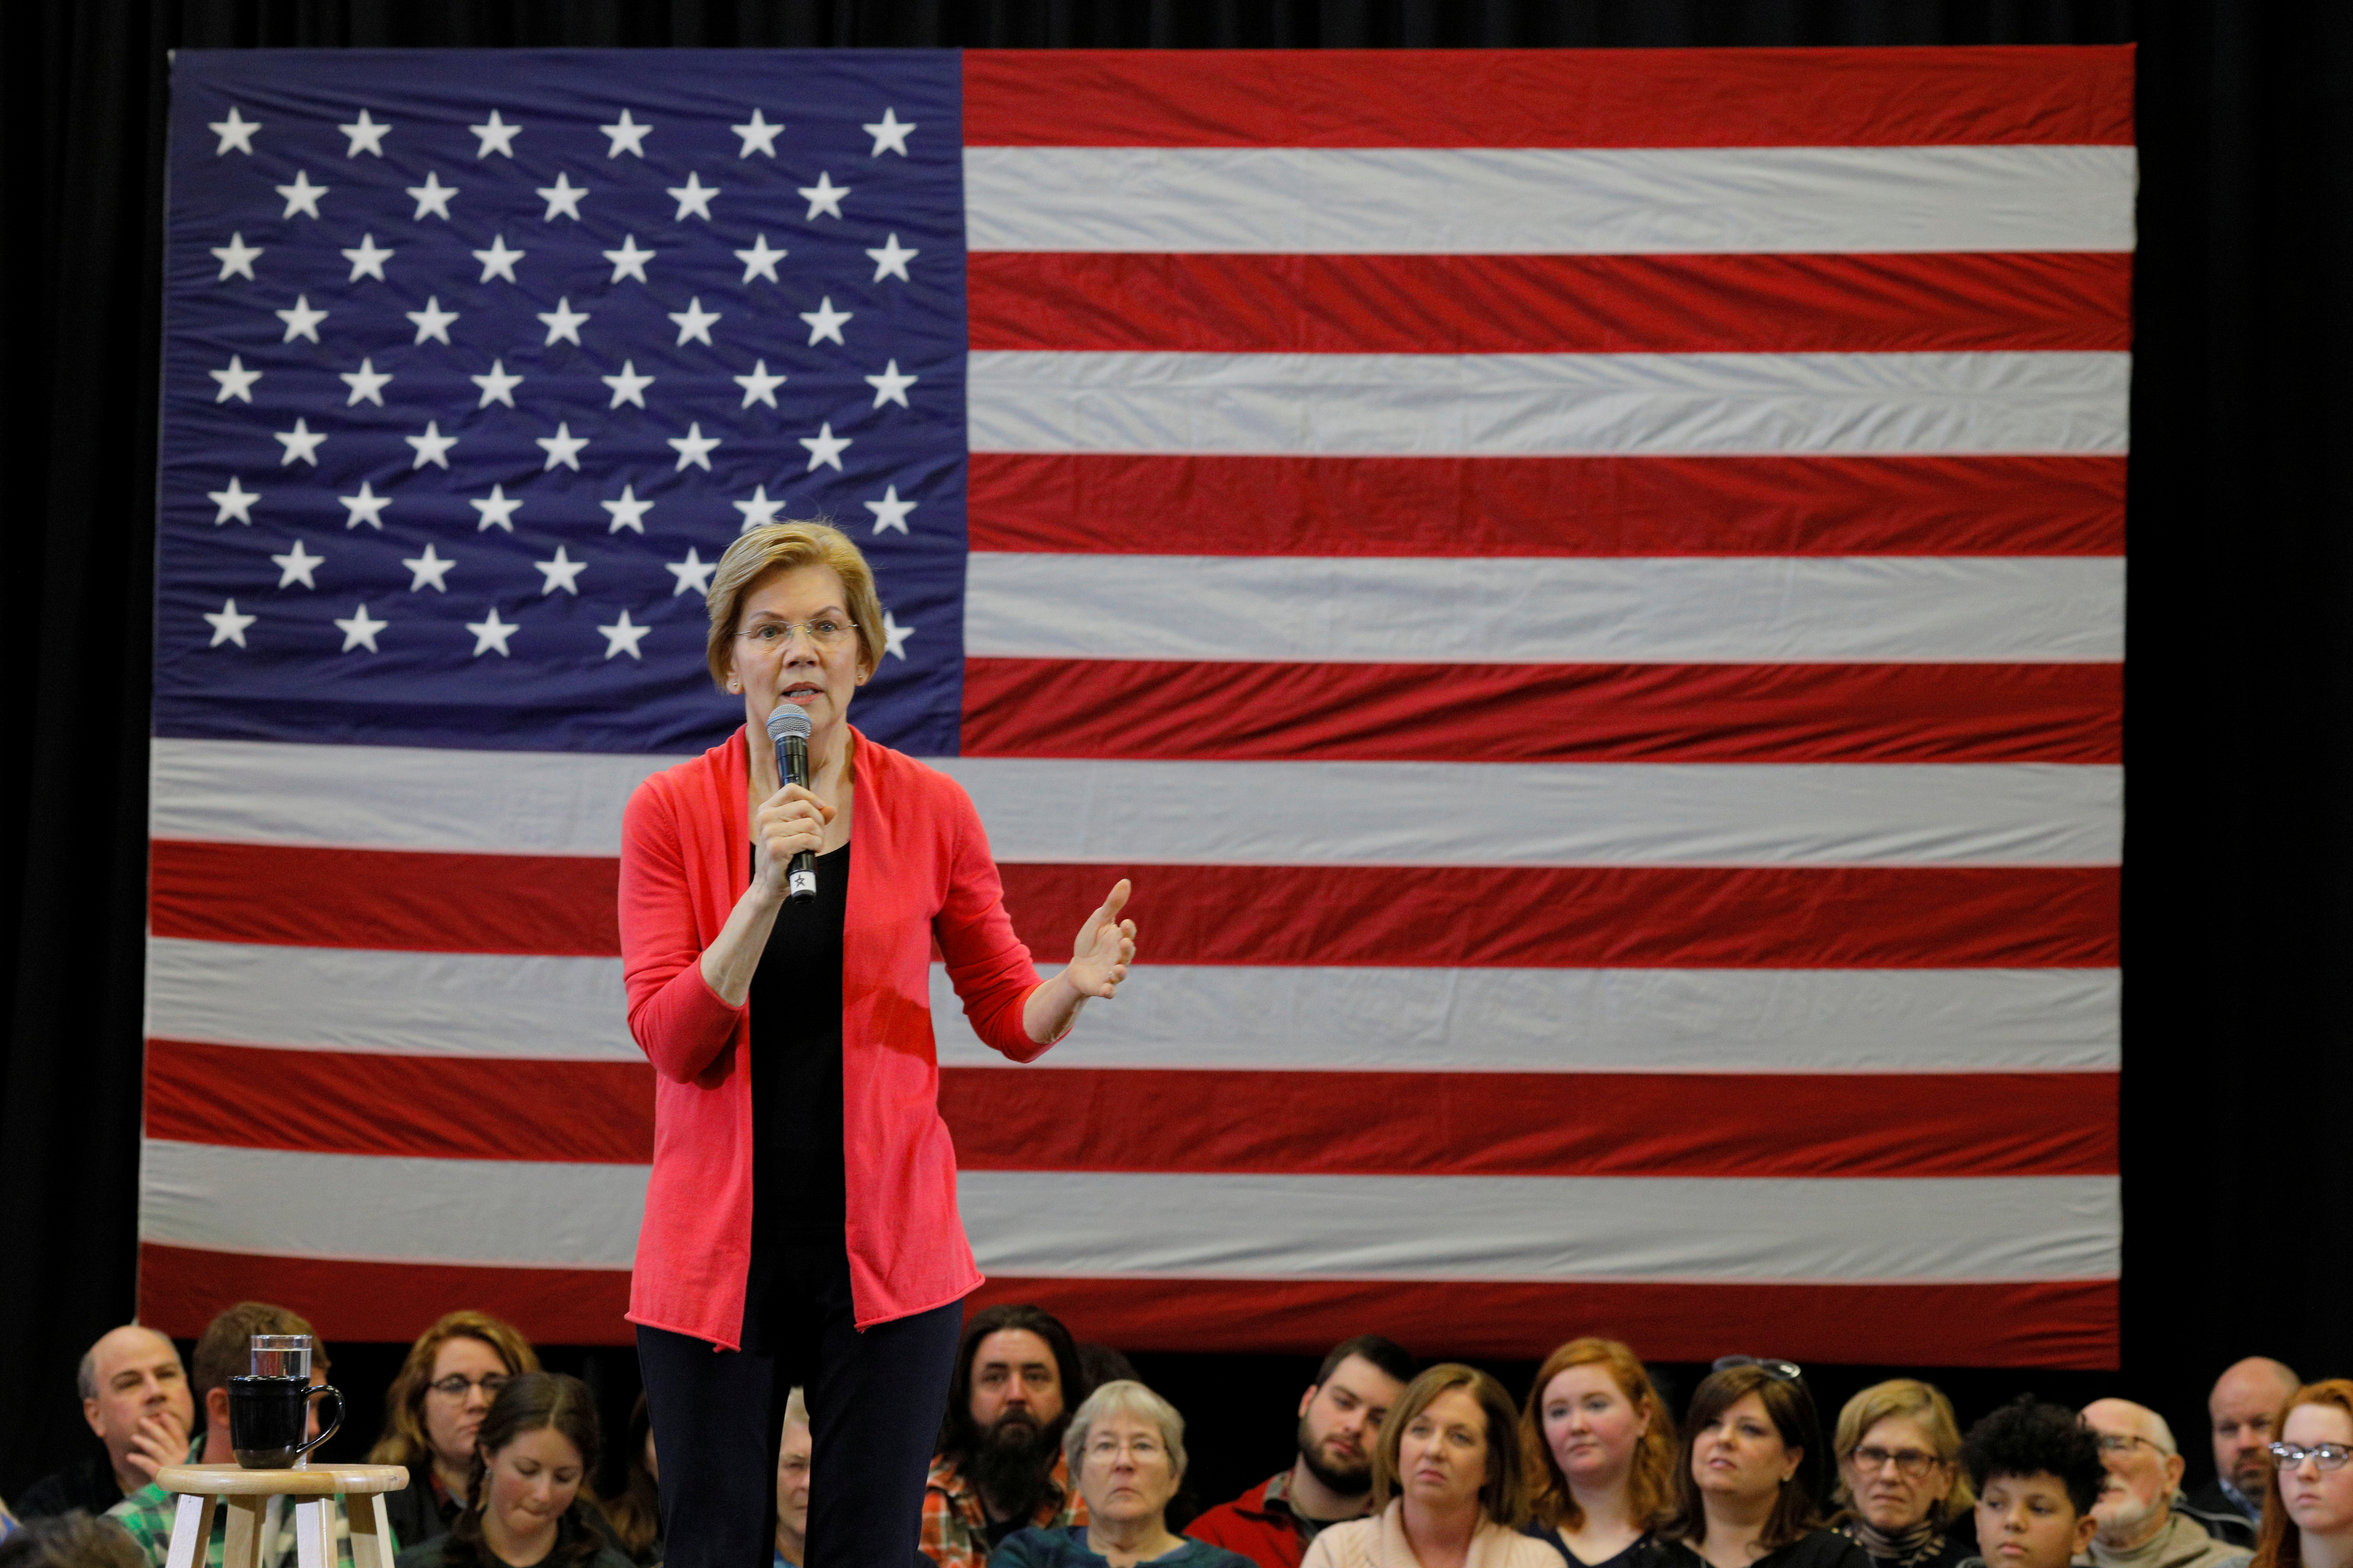 2020 Democratic presidential candidate U.S. Senator Elizabeth Warren (D-MA) speaks at an Organizing Event in Manchester, New Hampshire, U.S., January 12, 2019. REUTERS/Brian Snyder/File Photo